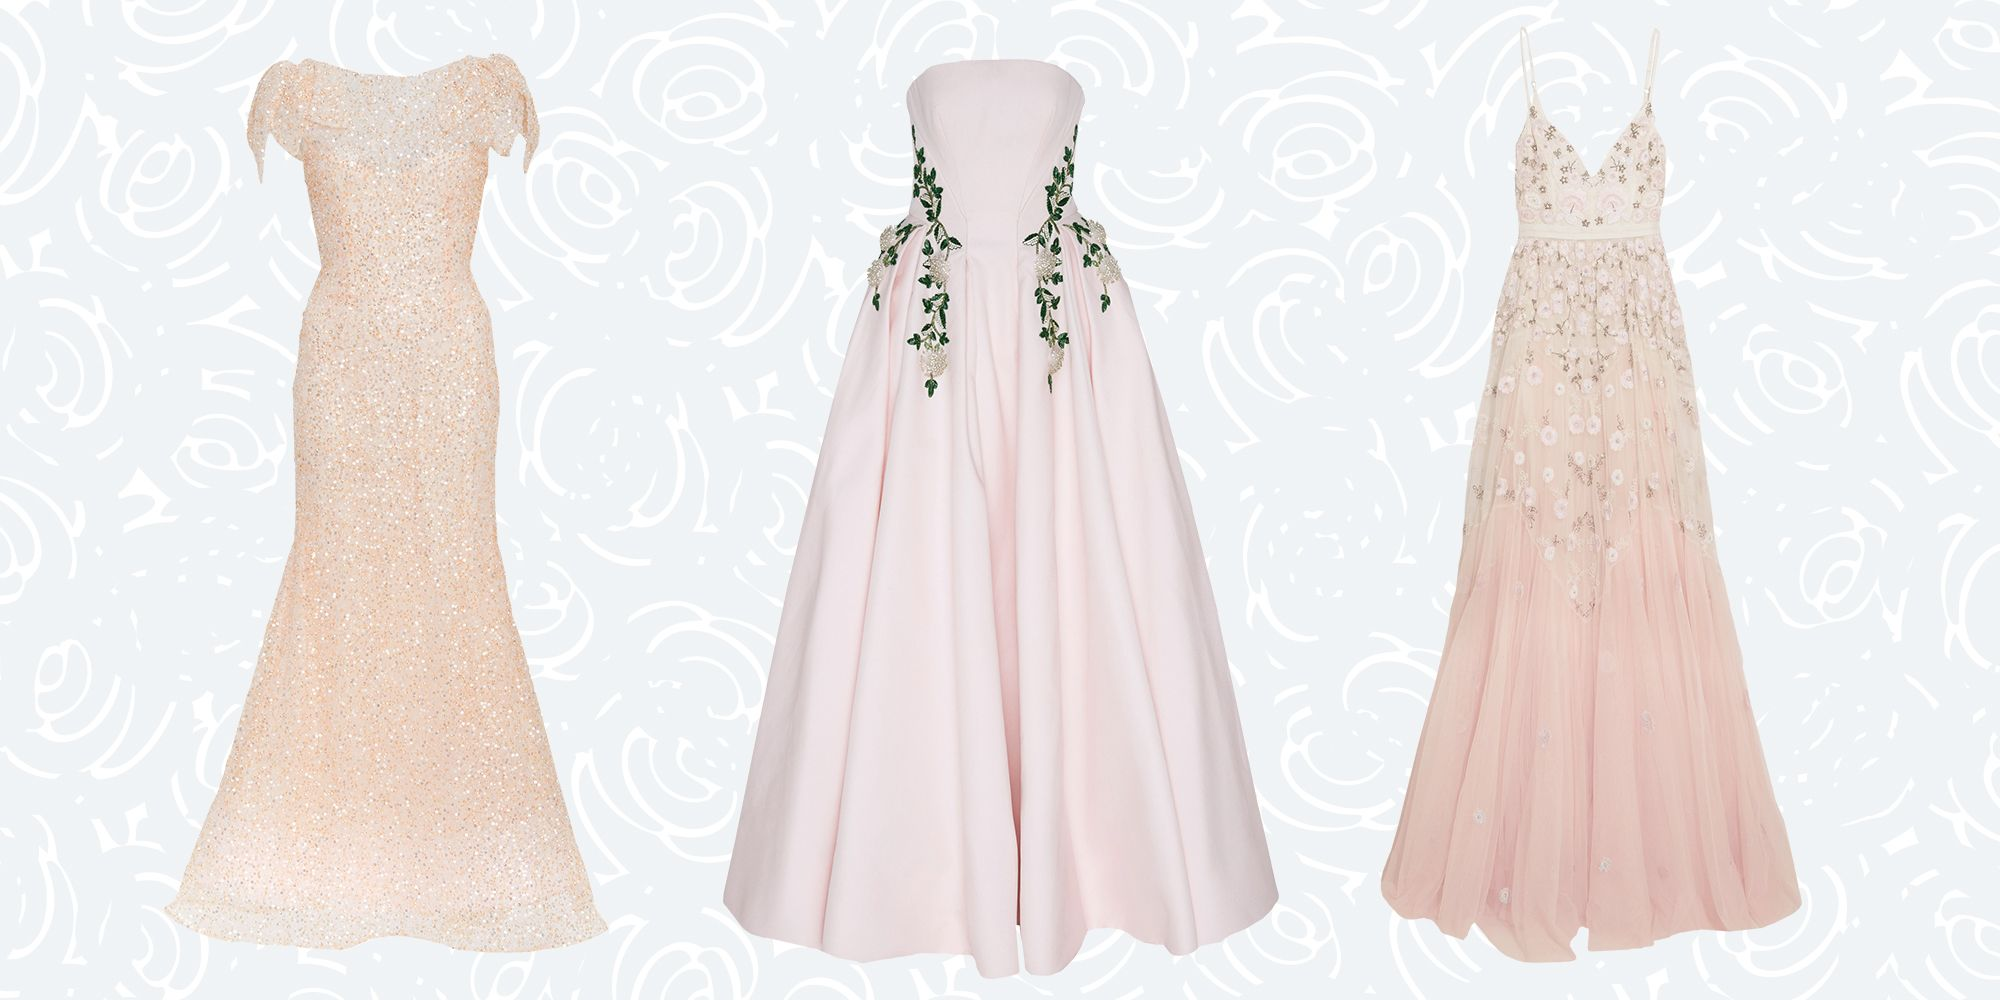 10 Perfectly Pink Wedding Dresses Dresses For The Unconventional Bride